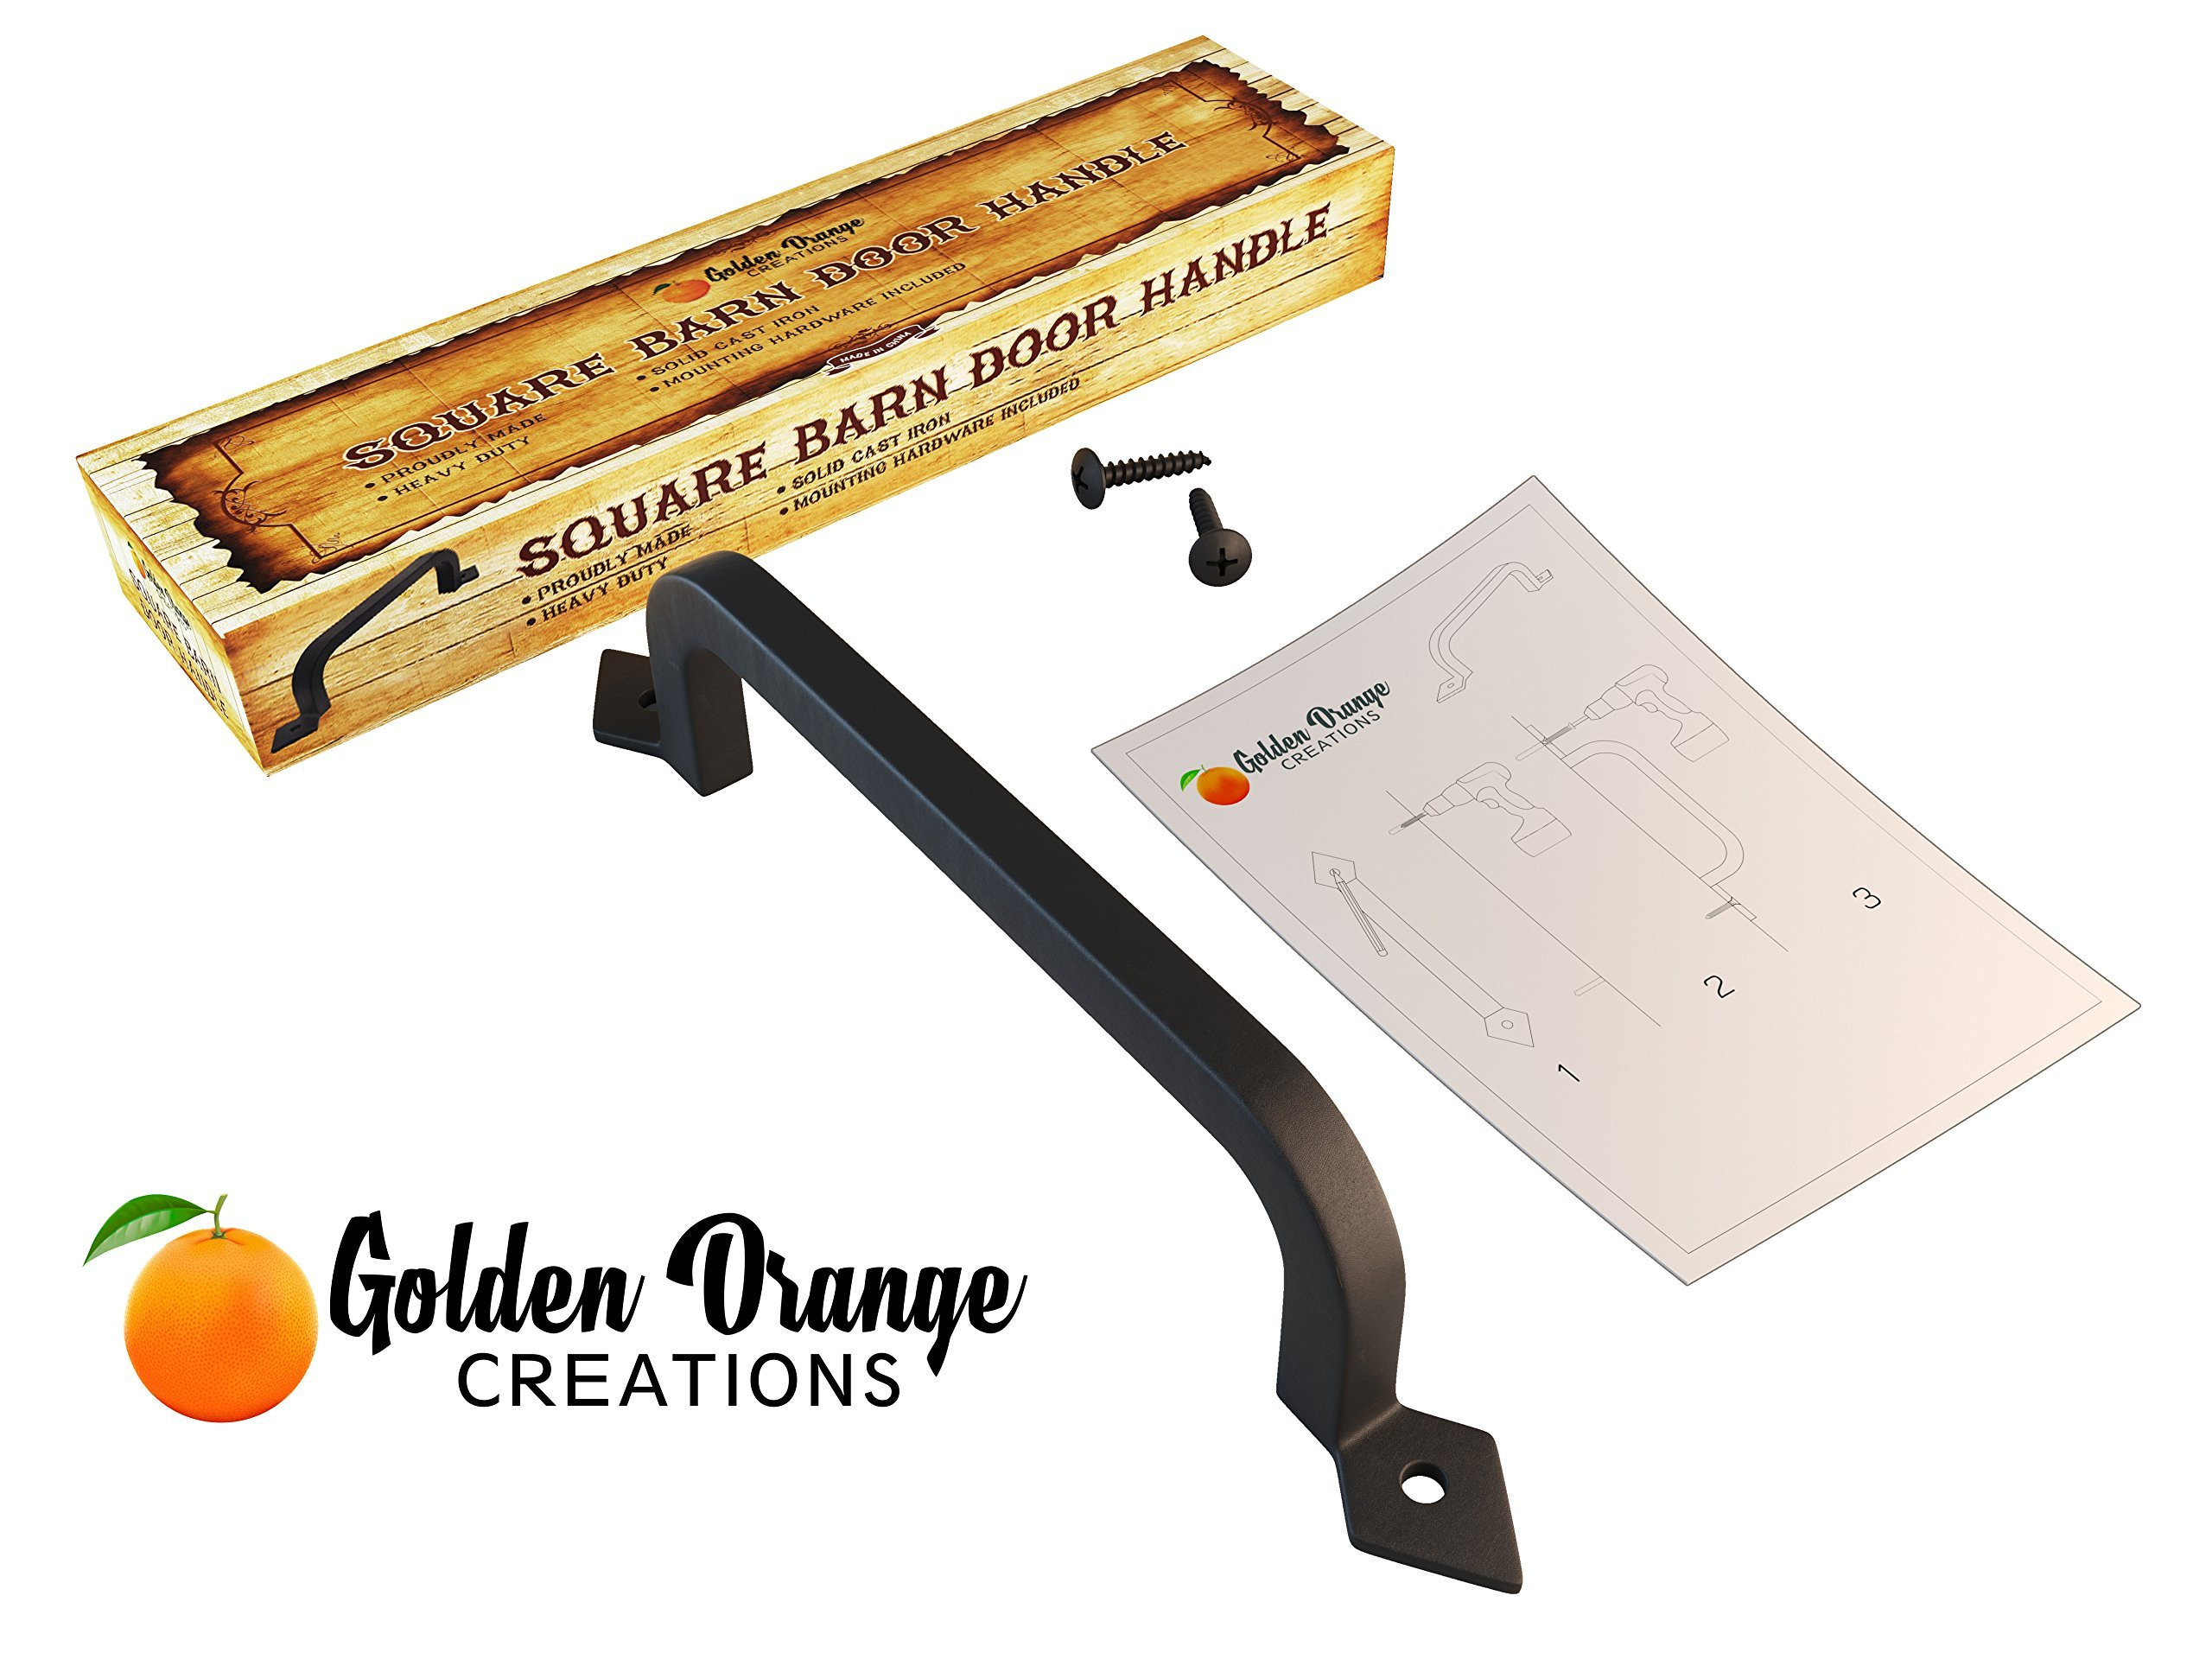 9-3/4'' Antique Barn Door Pull Handle with 2 Matching Black Screws - for Custom and Luxury Sliding Barn Doors, Pantry, Closet, Furniture, Garage, Gate, Shed - Solid Cast Iron Hardware Handle by Golden Orange Creations (Image #8)